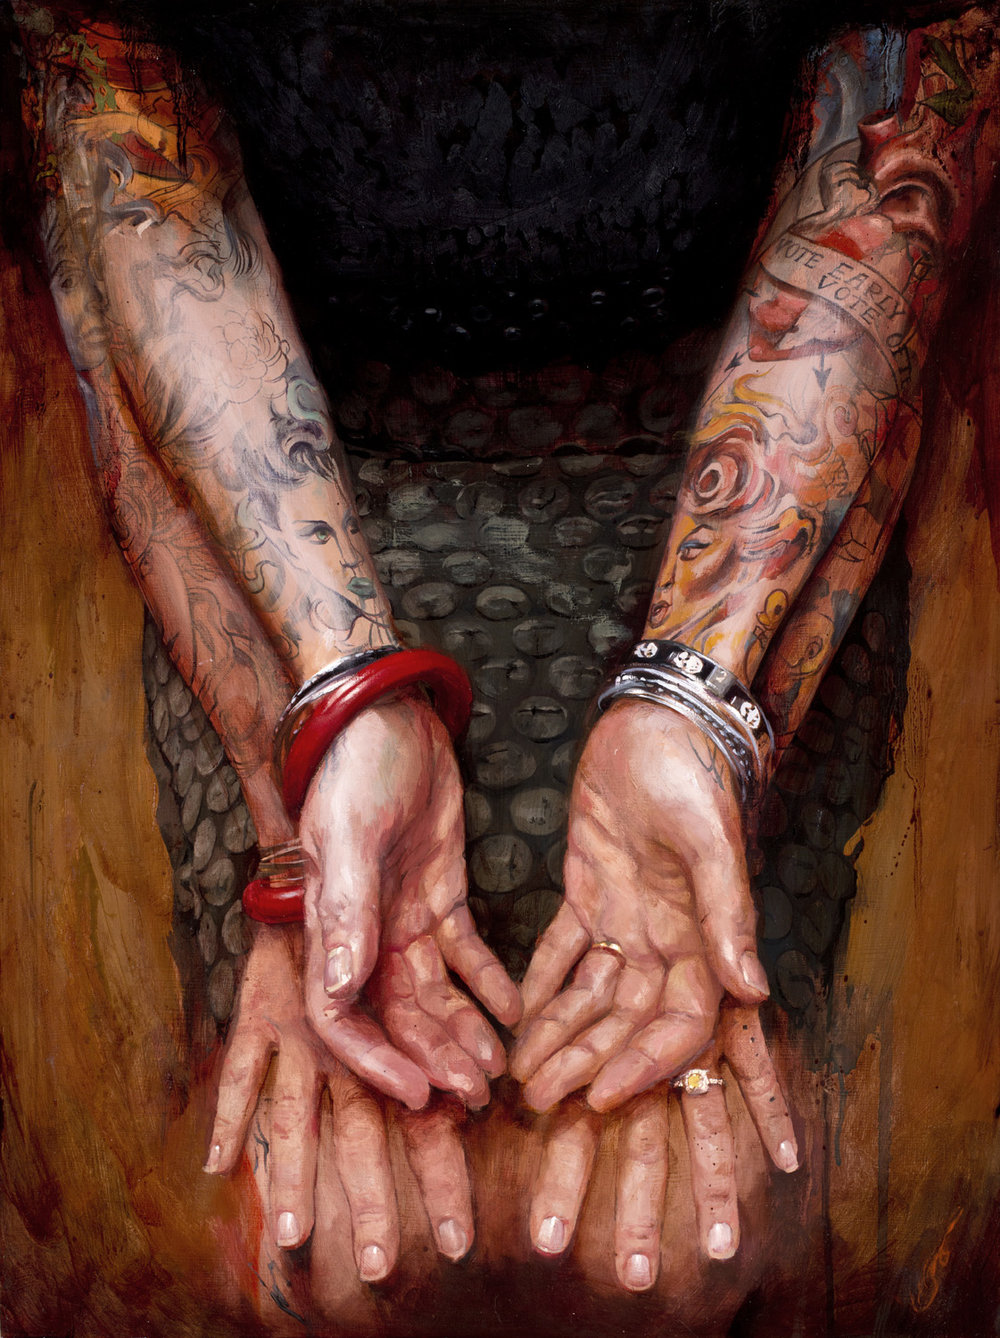 "'Portrait of the Artist, Hannah Aitchison, Hands Study1', oil on wood, 24"" x 18"", 2012, Collection of Hannah Aitchison"